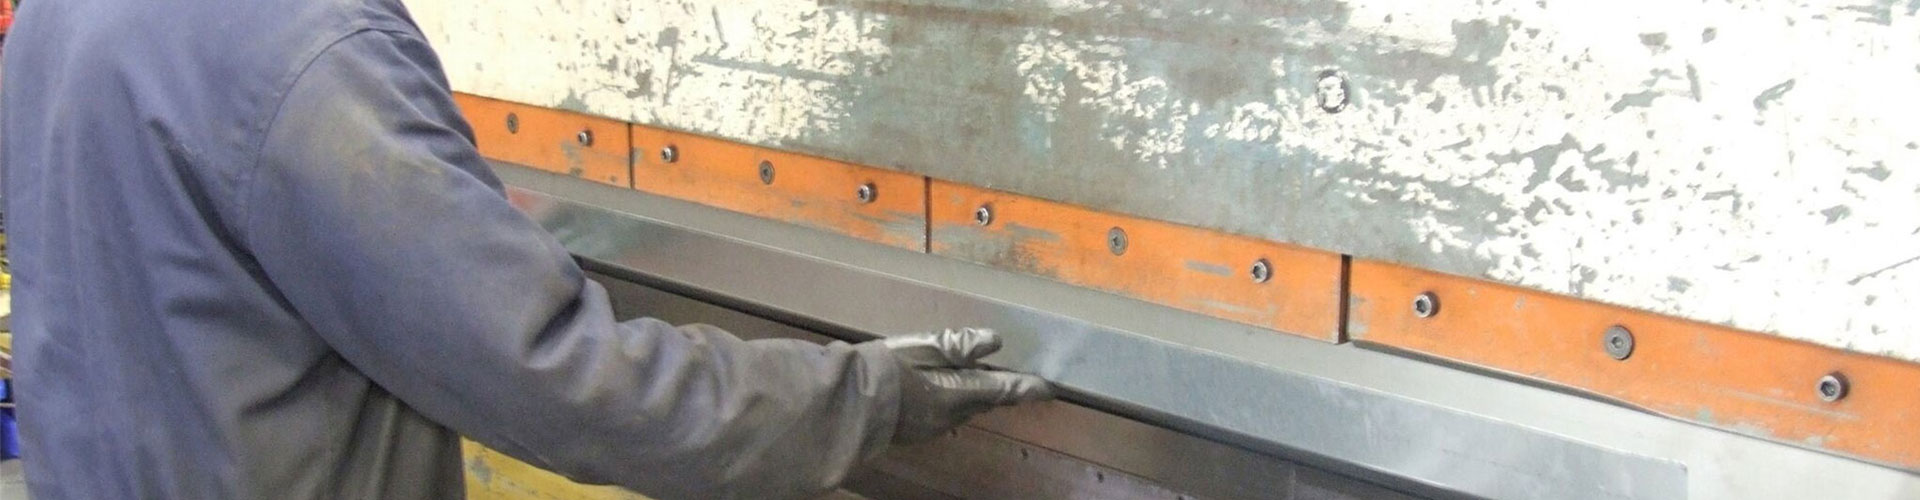 Metal Pressing and Folding Services